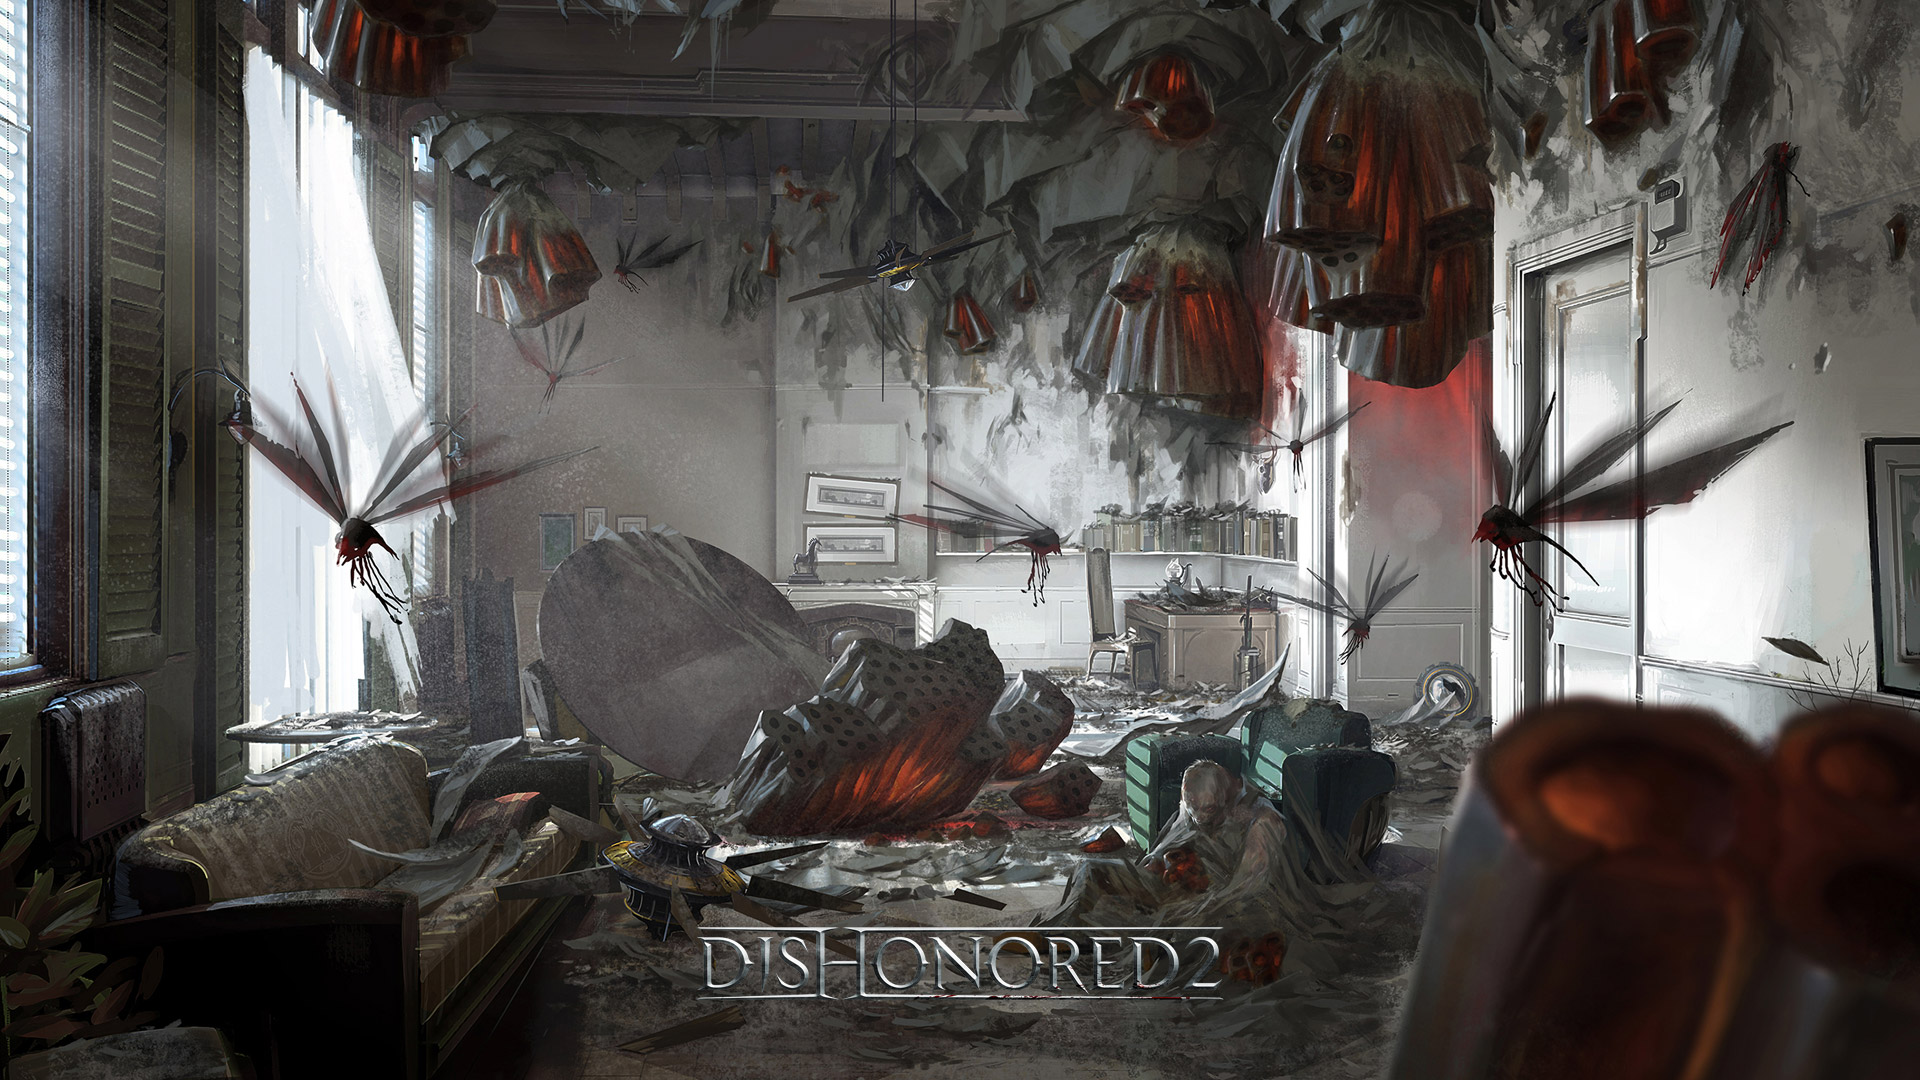 Dishonored 2 Wallpaper 6